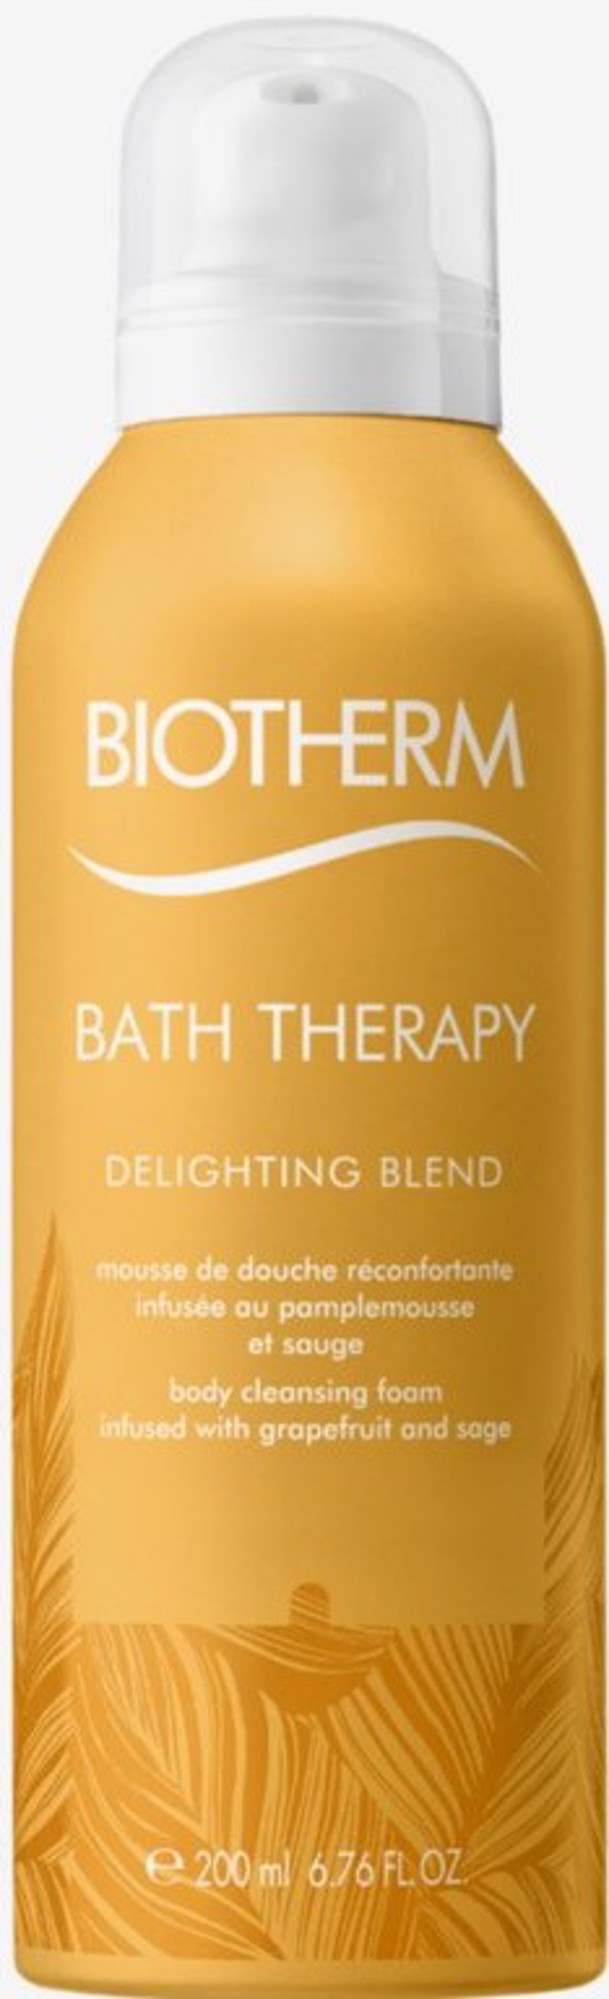 BATH THERAPY DELIGHTING BLEND